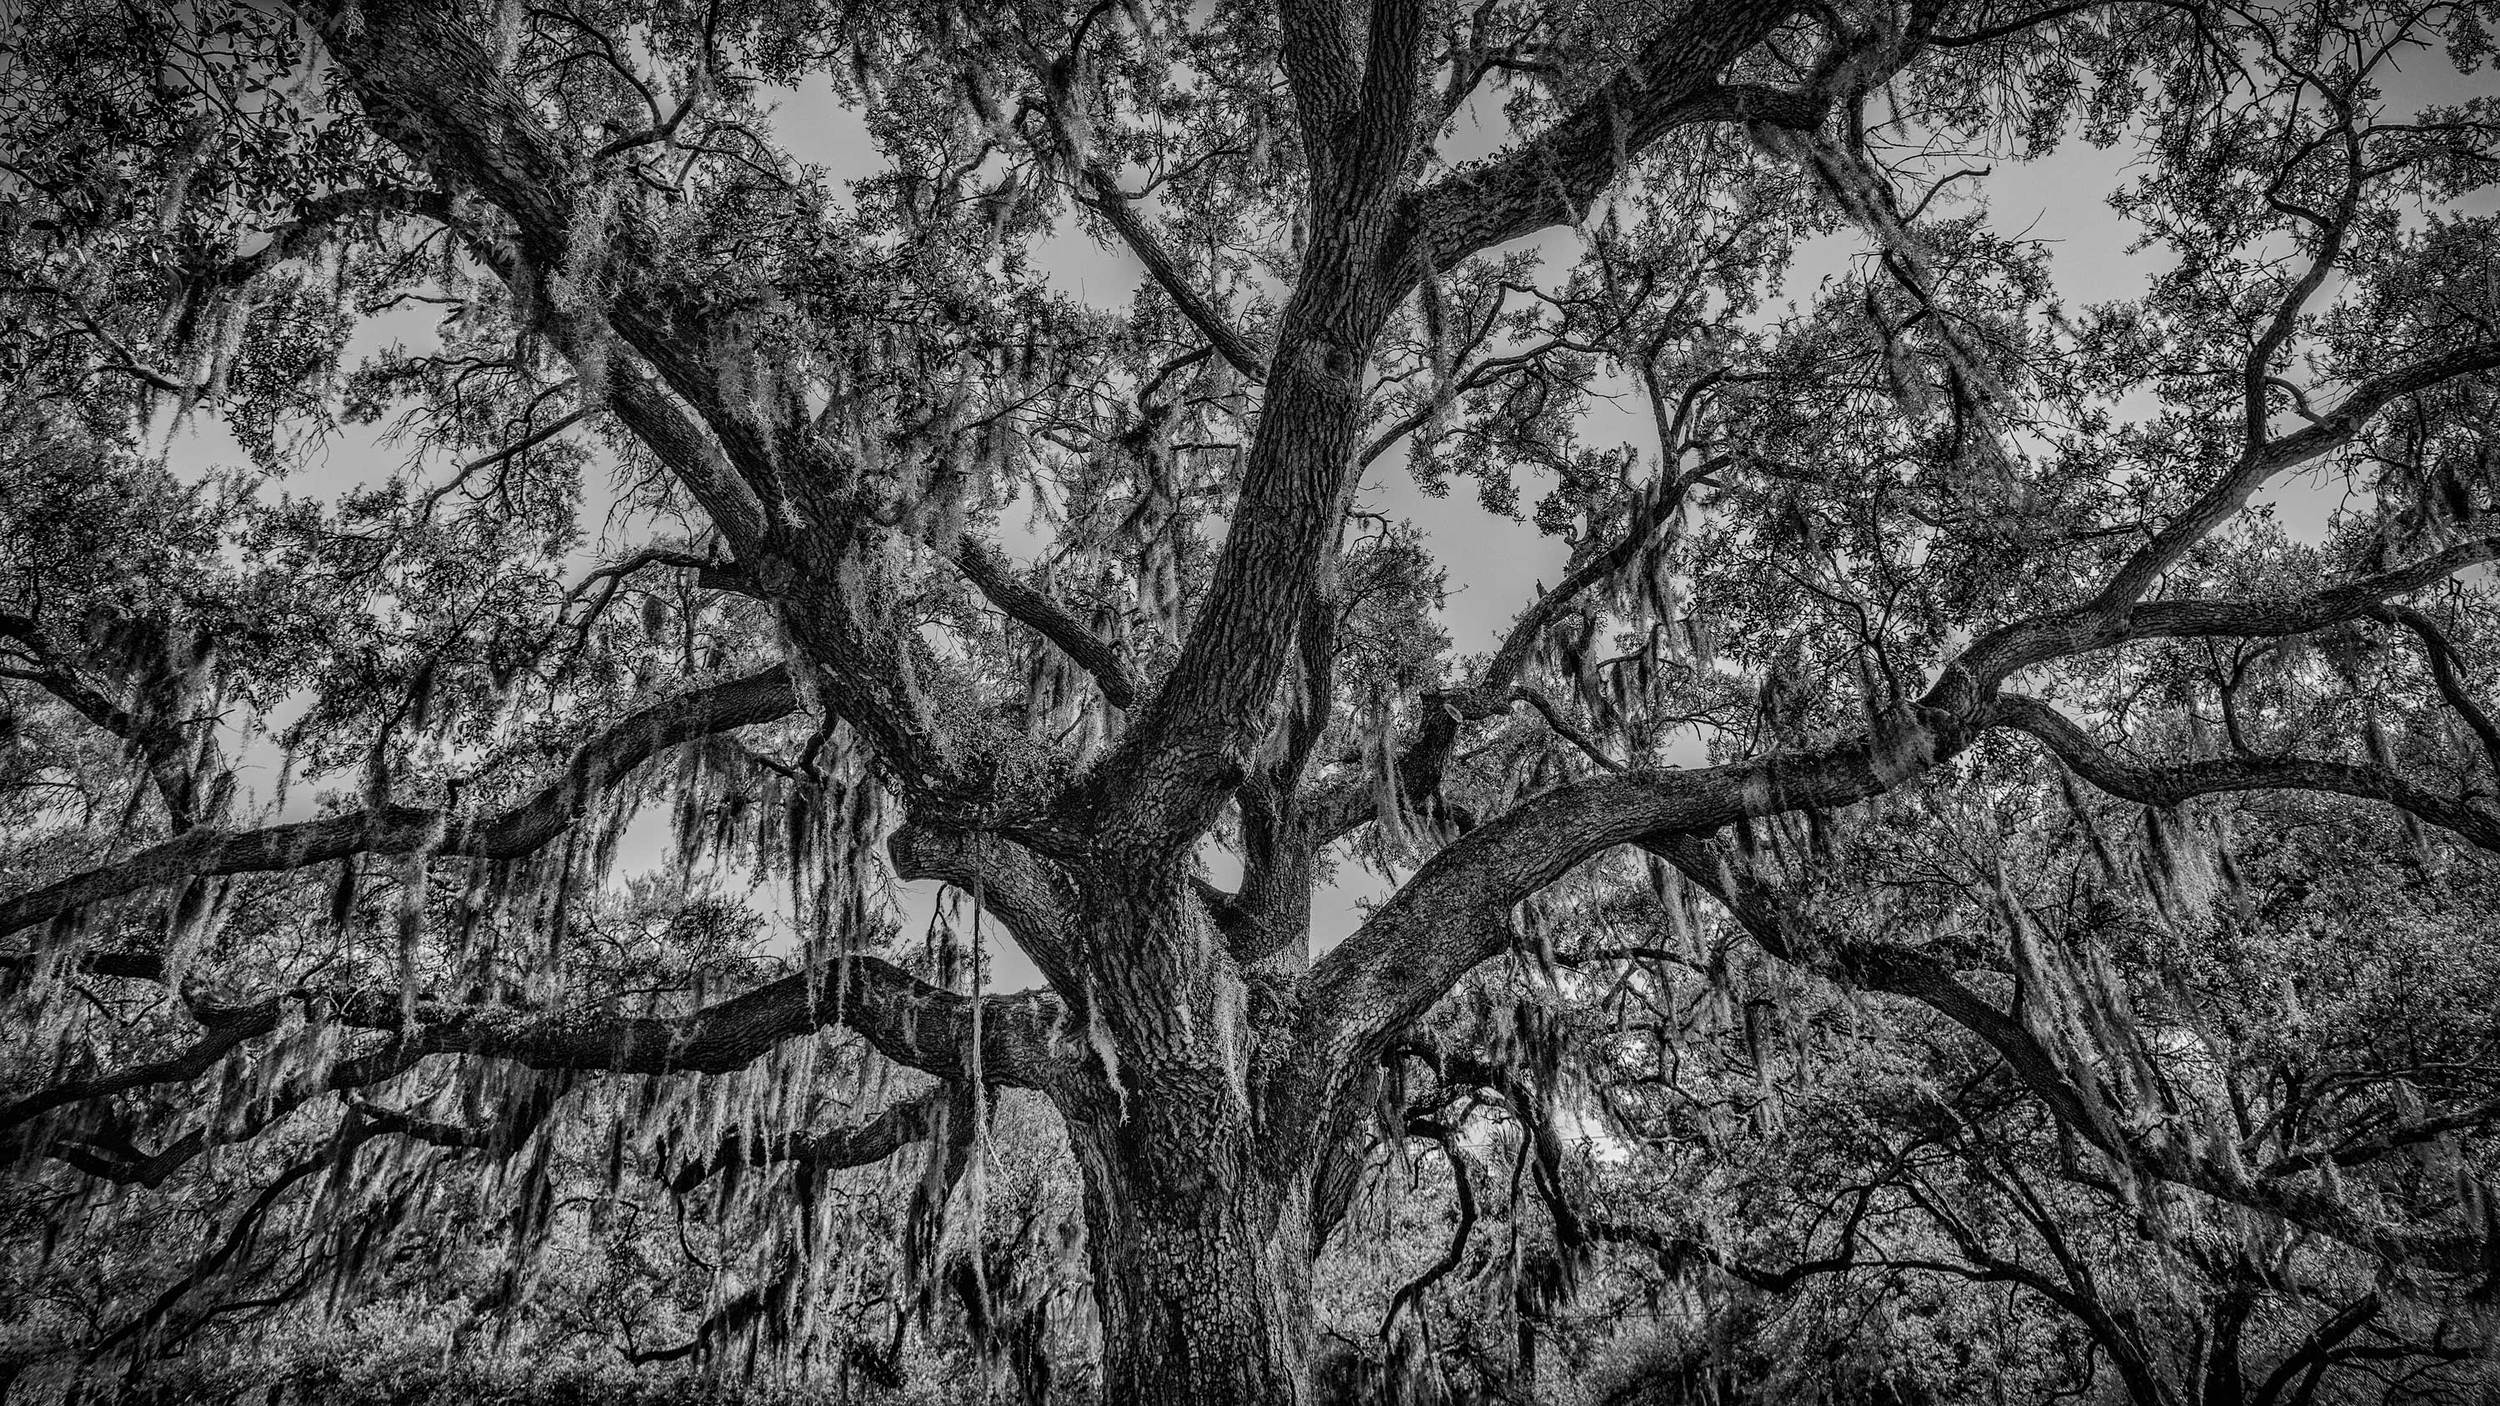 My spanish moss tree in Savannah, Georgia. This tree reminds me of the south - I love all the detail in the bark and branches!